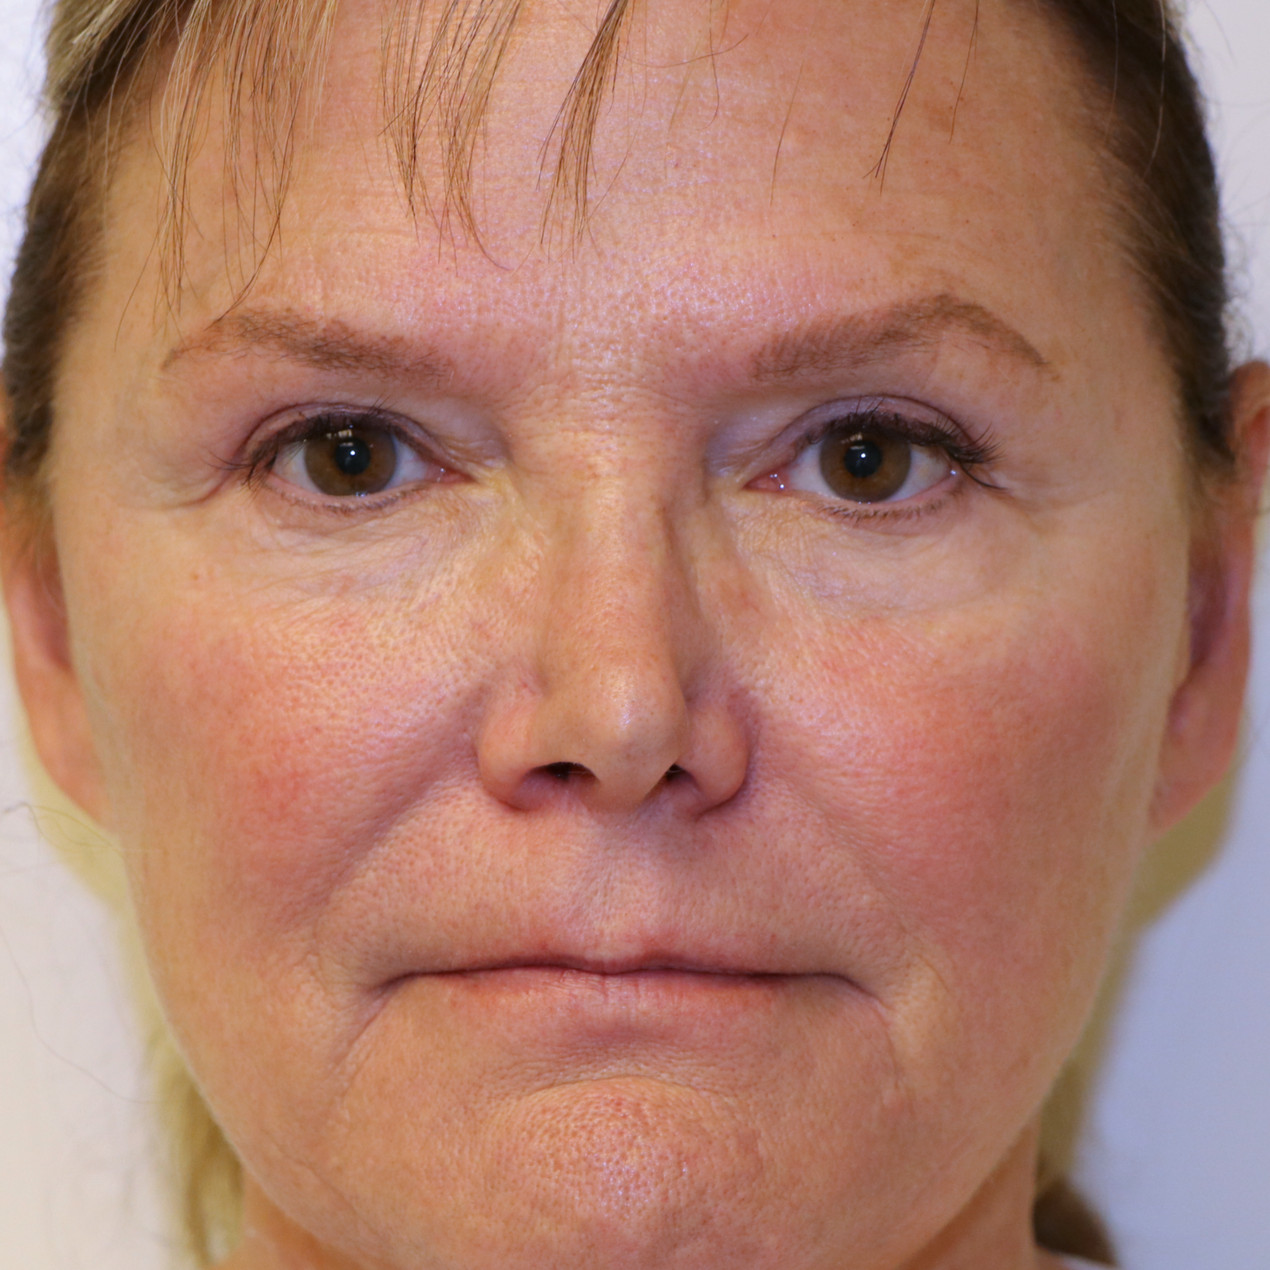 Before Nasal valve collapse surgery